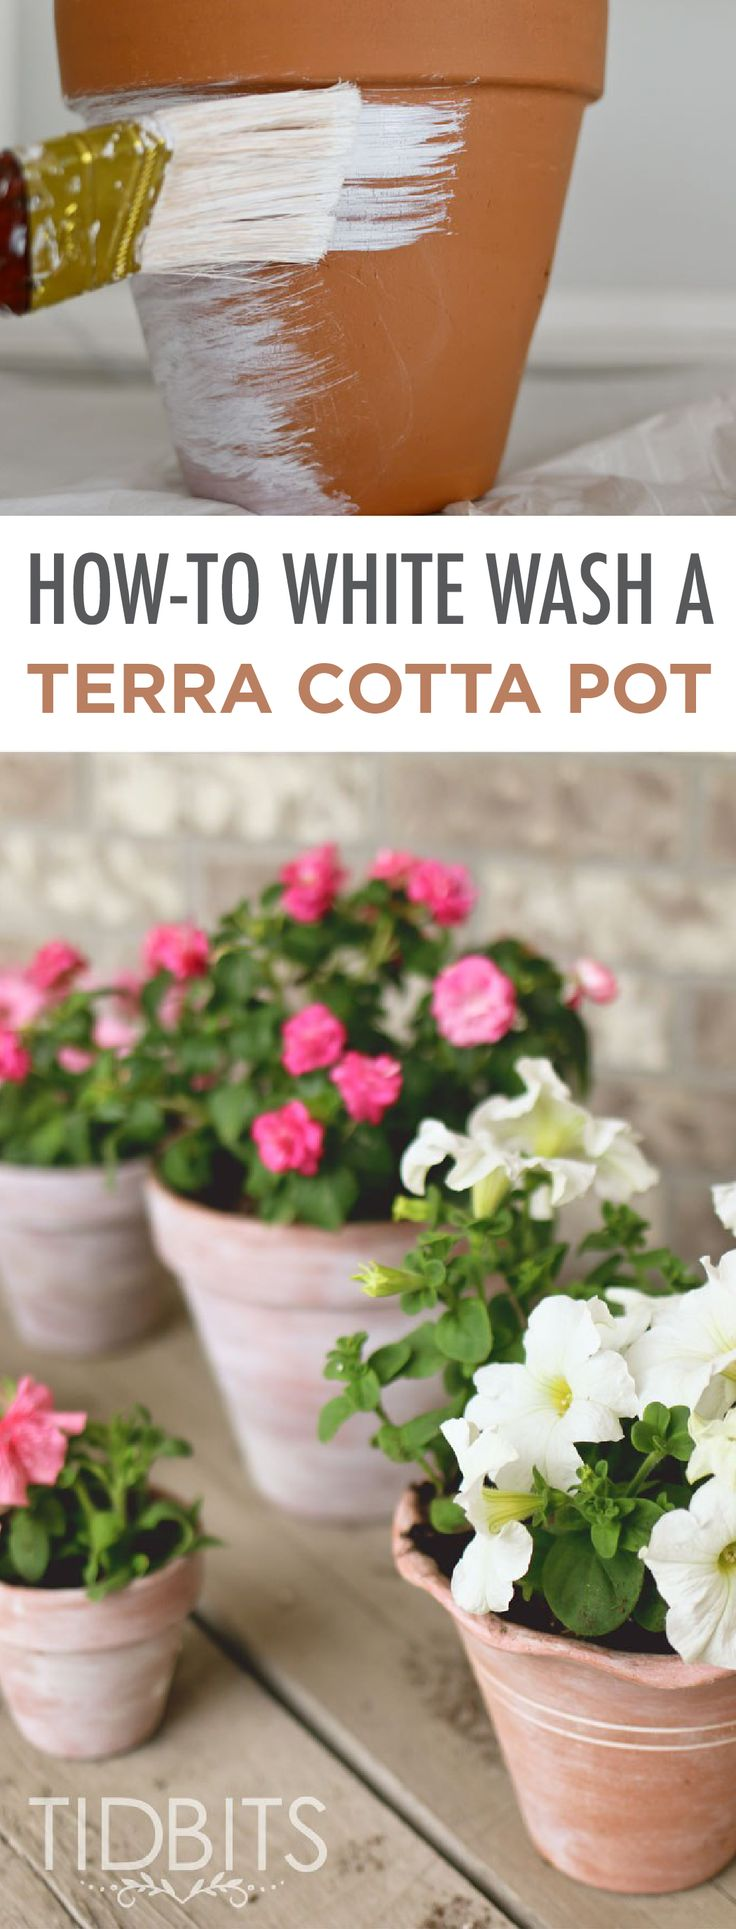 best 25+ terracotta pots ideas only on pinterest | painting